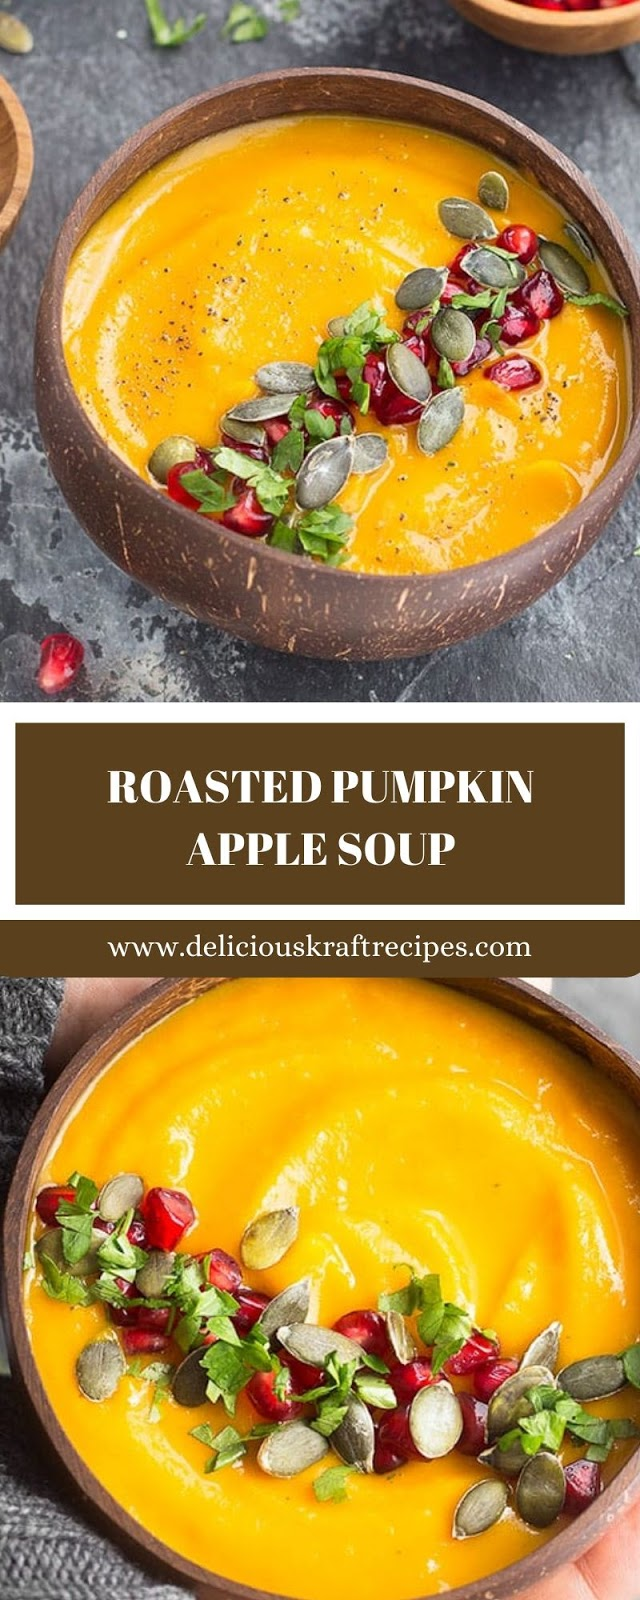 ROASTED PUMPKIN APPLE SOUP